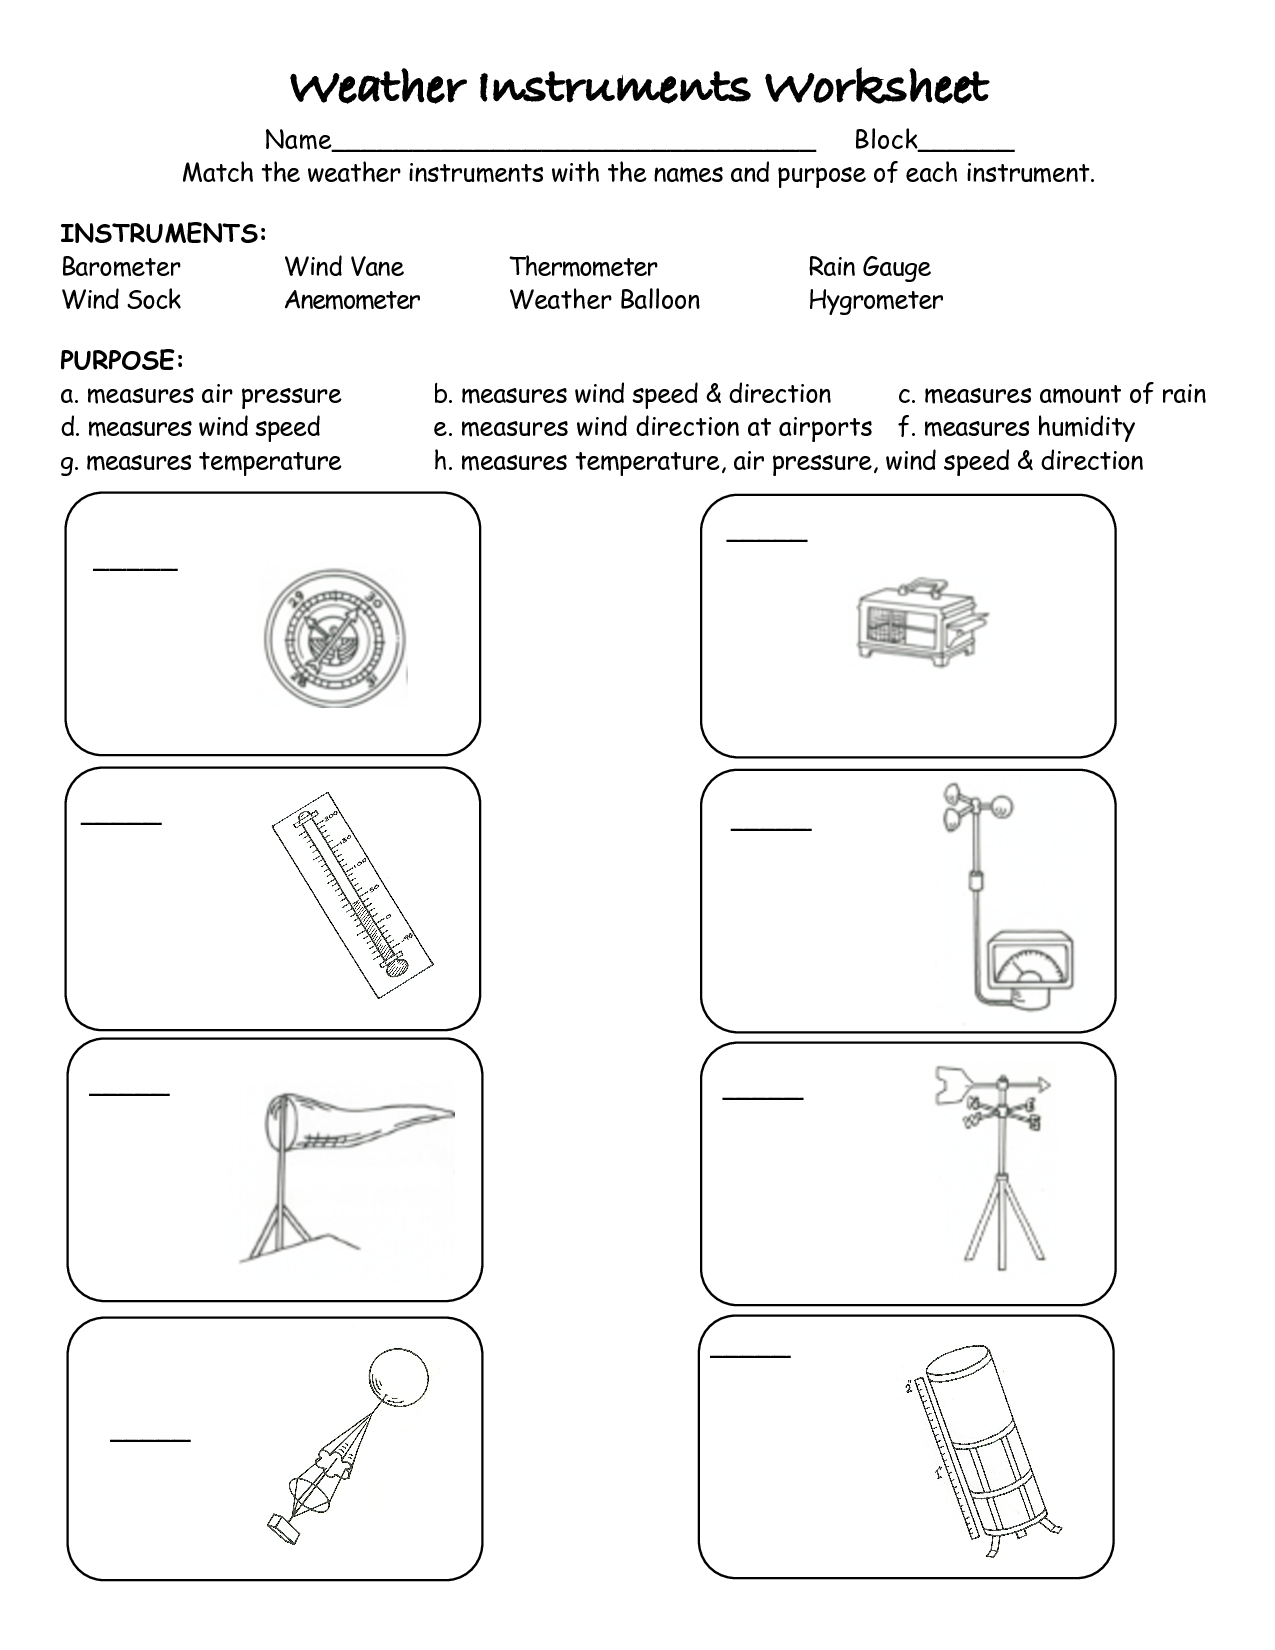 worksheets weather instruments Weather Worksheets PDF